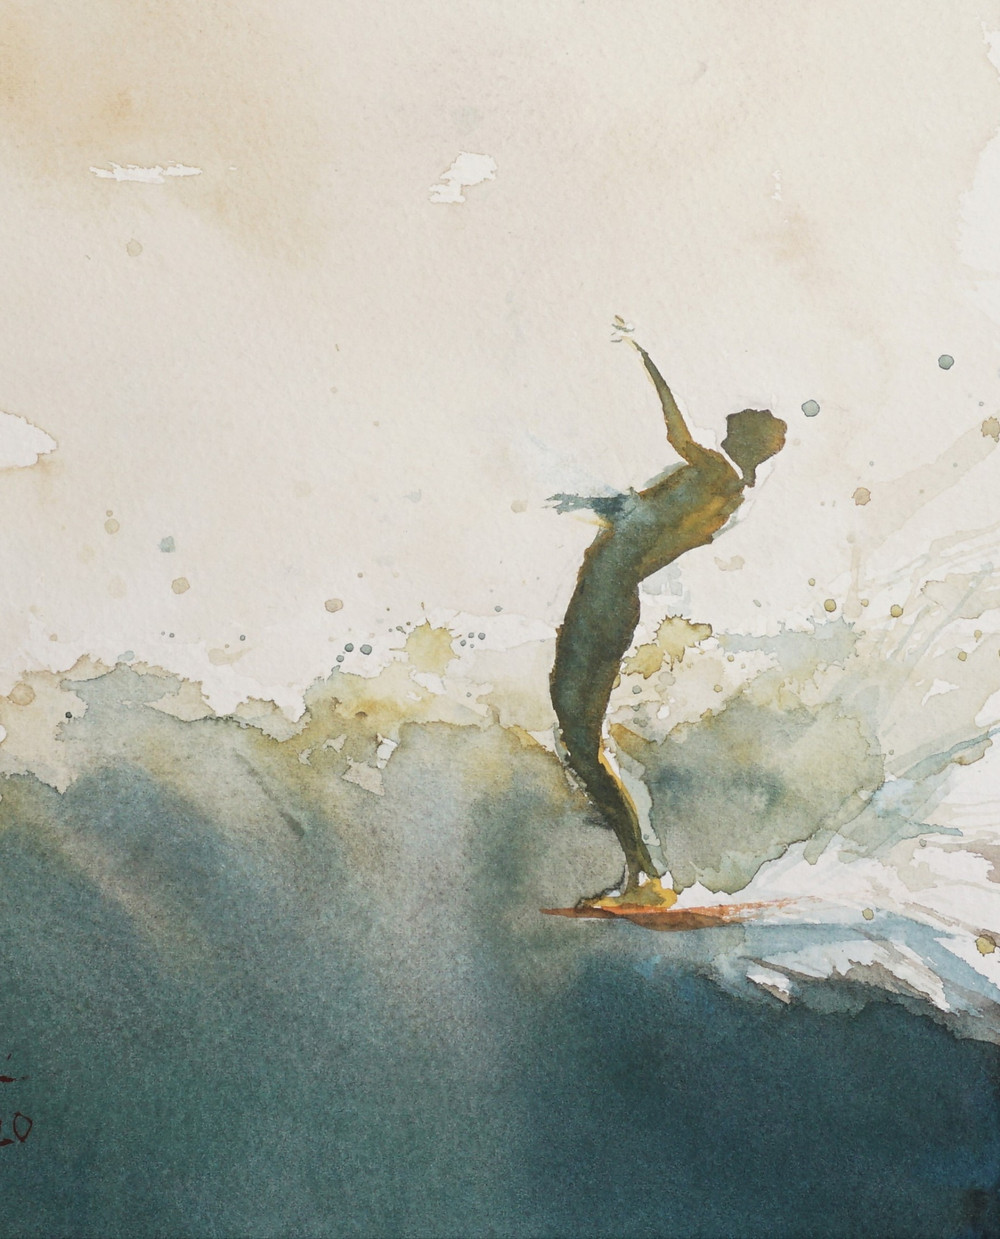 surf art; surf painting; watercolor painting; longboarding; surf culture; surf decoration; surf gift; aquarella; man surfing; cool surf art; is surfing an art?; why people like surfing